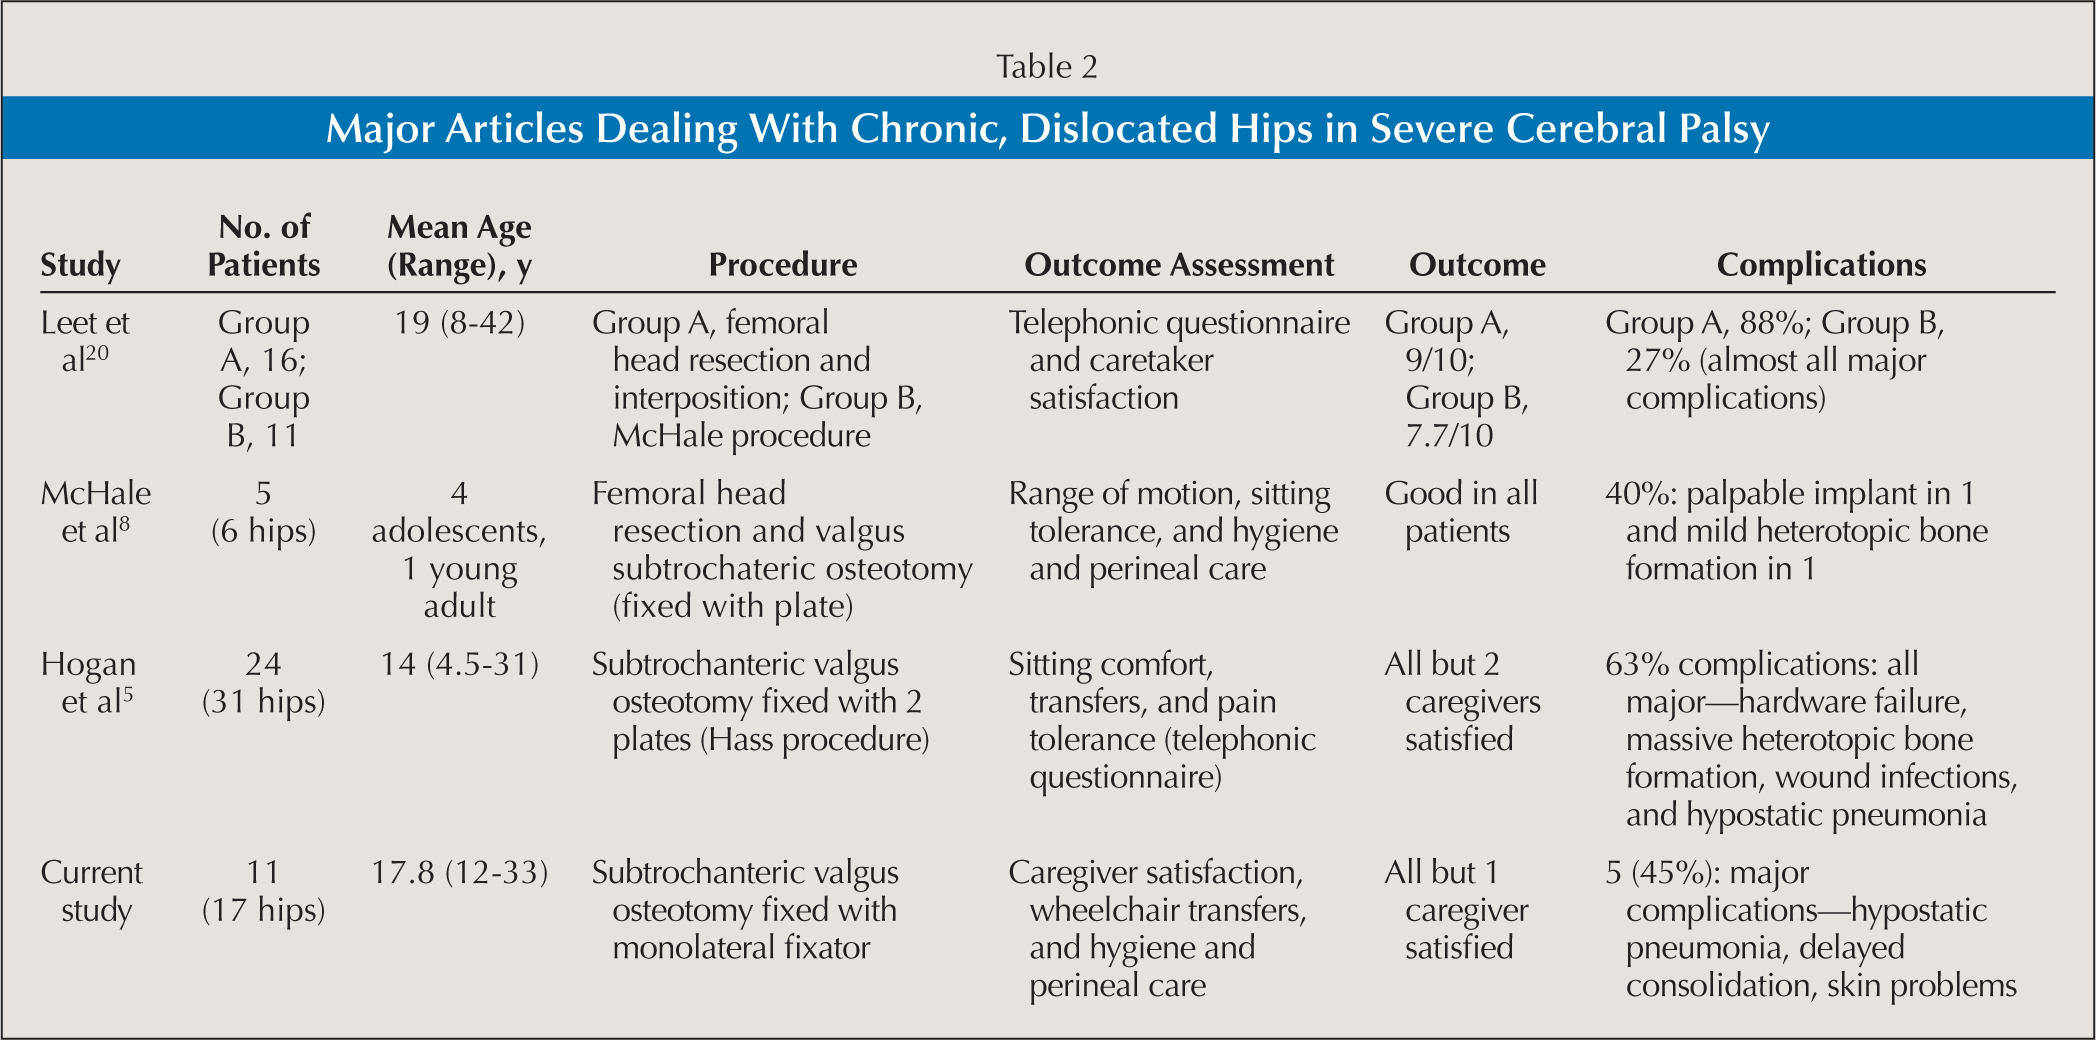 Major Articles Dealing With Chronic, Dislocated Hips in Severe Cerebral Palsy